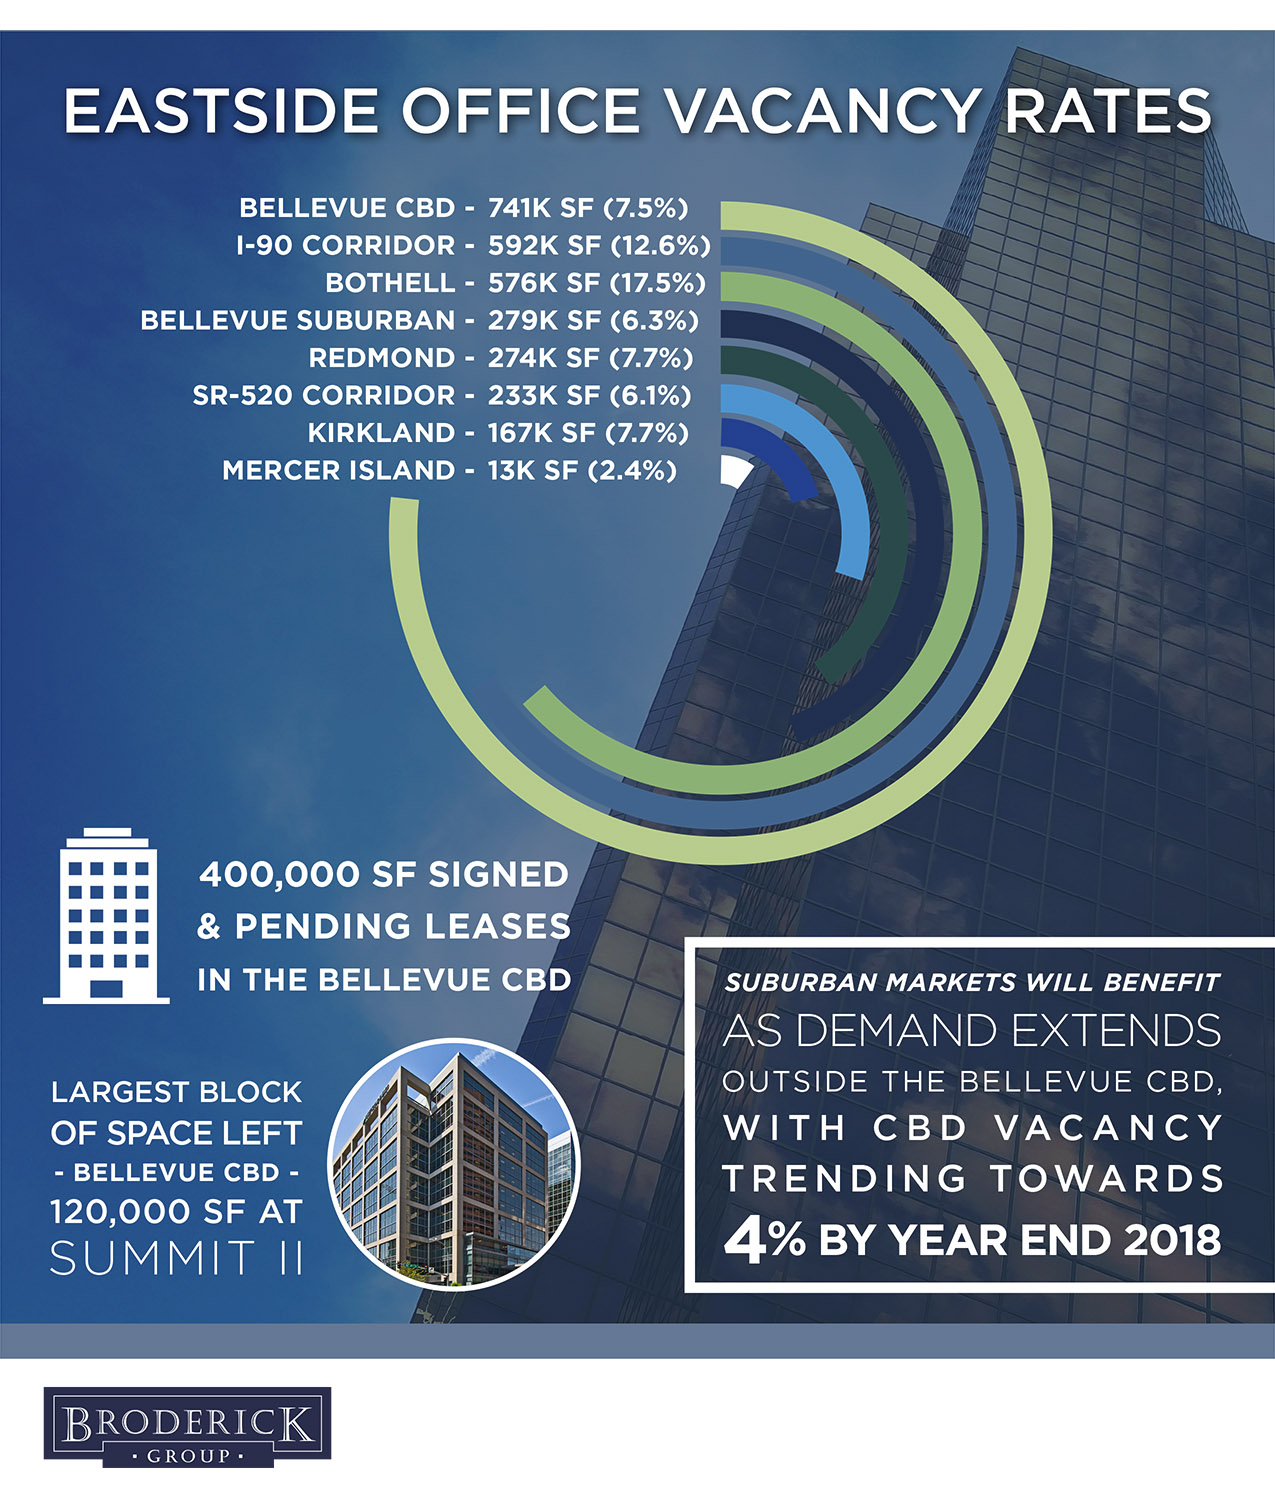 broderick_vacancy_graphic_q12018.jpg